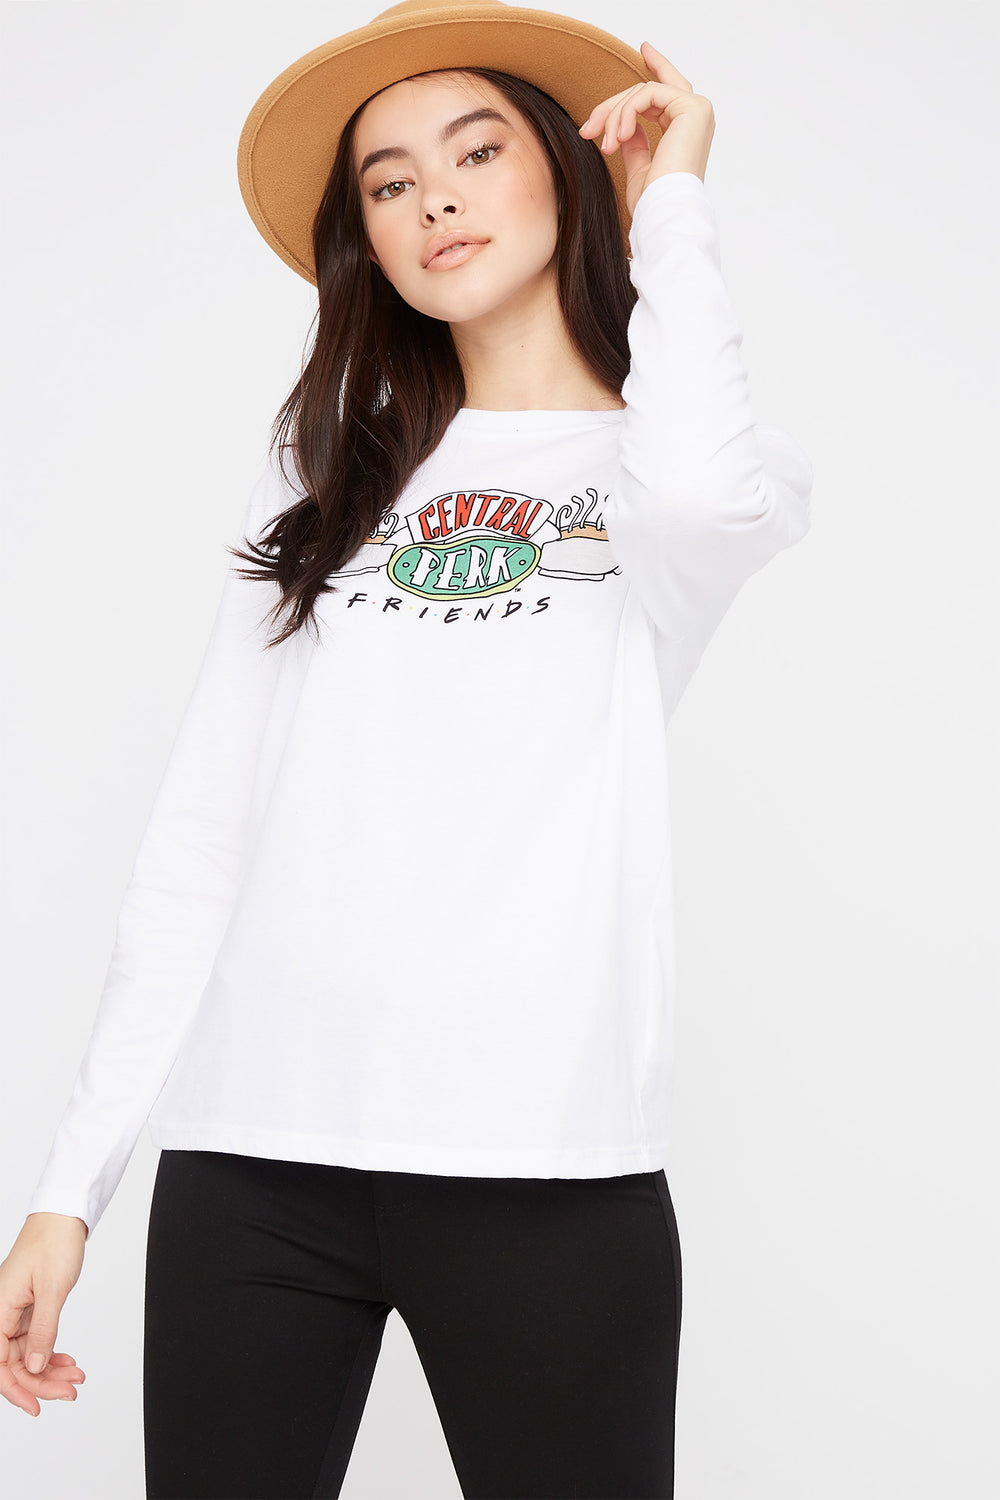 Friends Central Perk Graphic Long Sleeve White